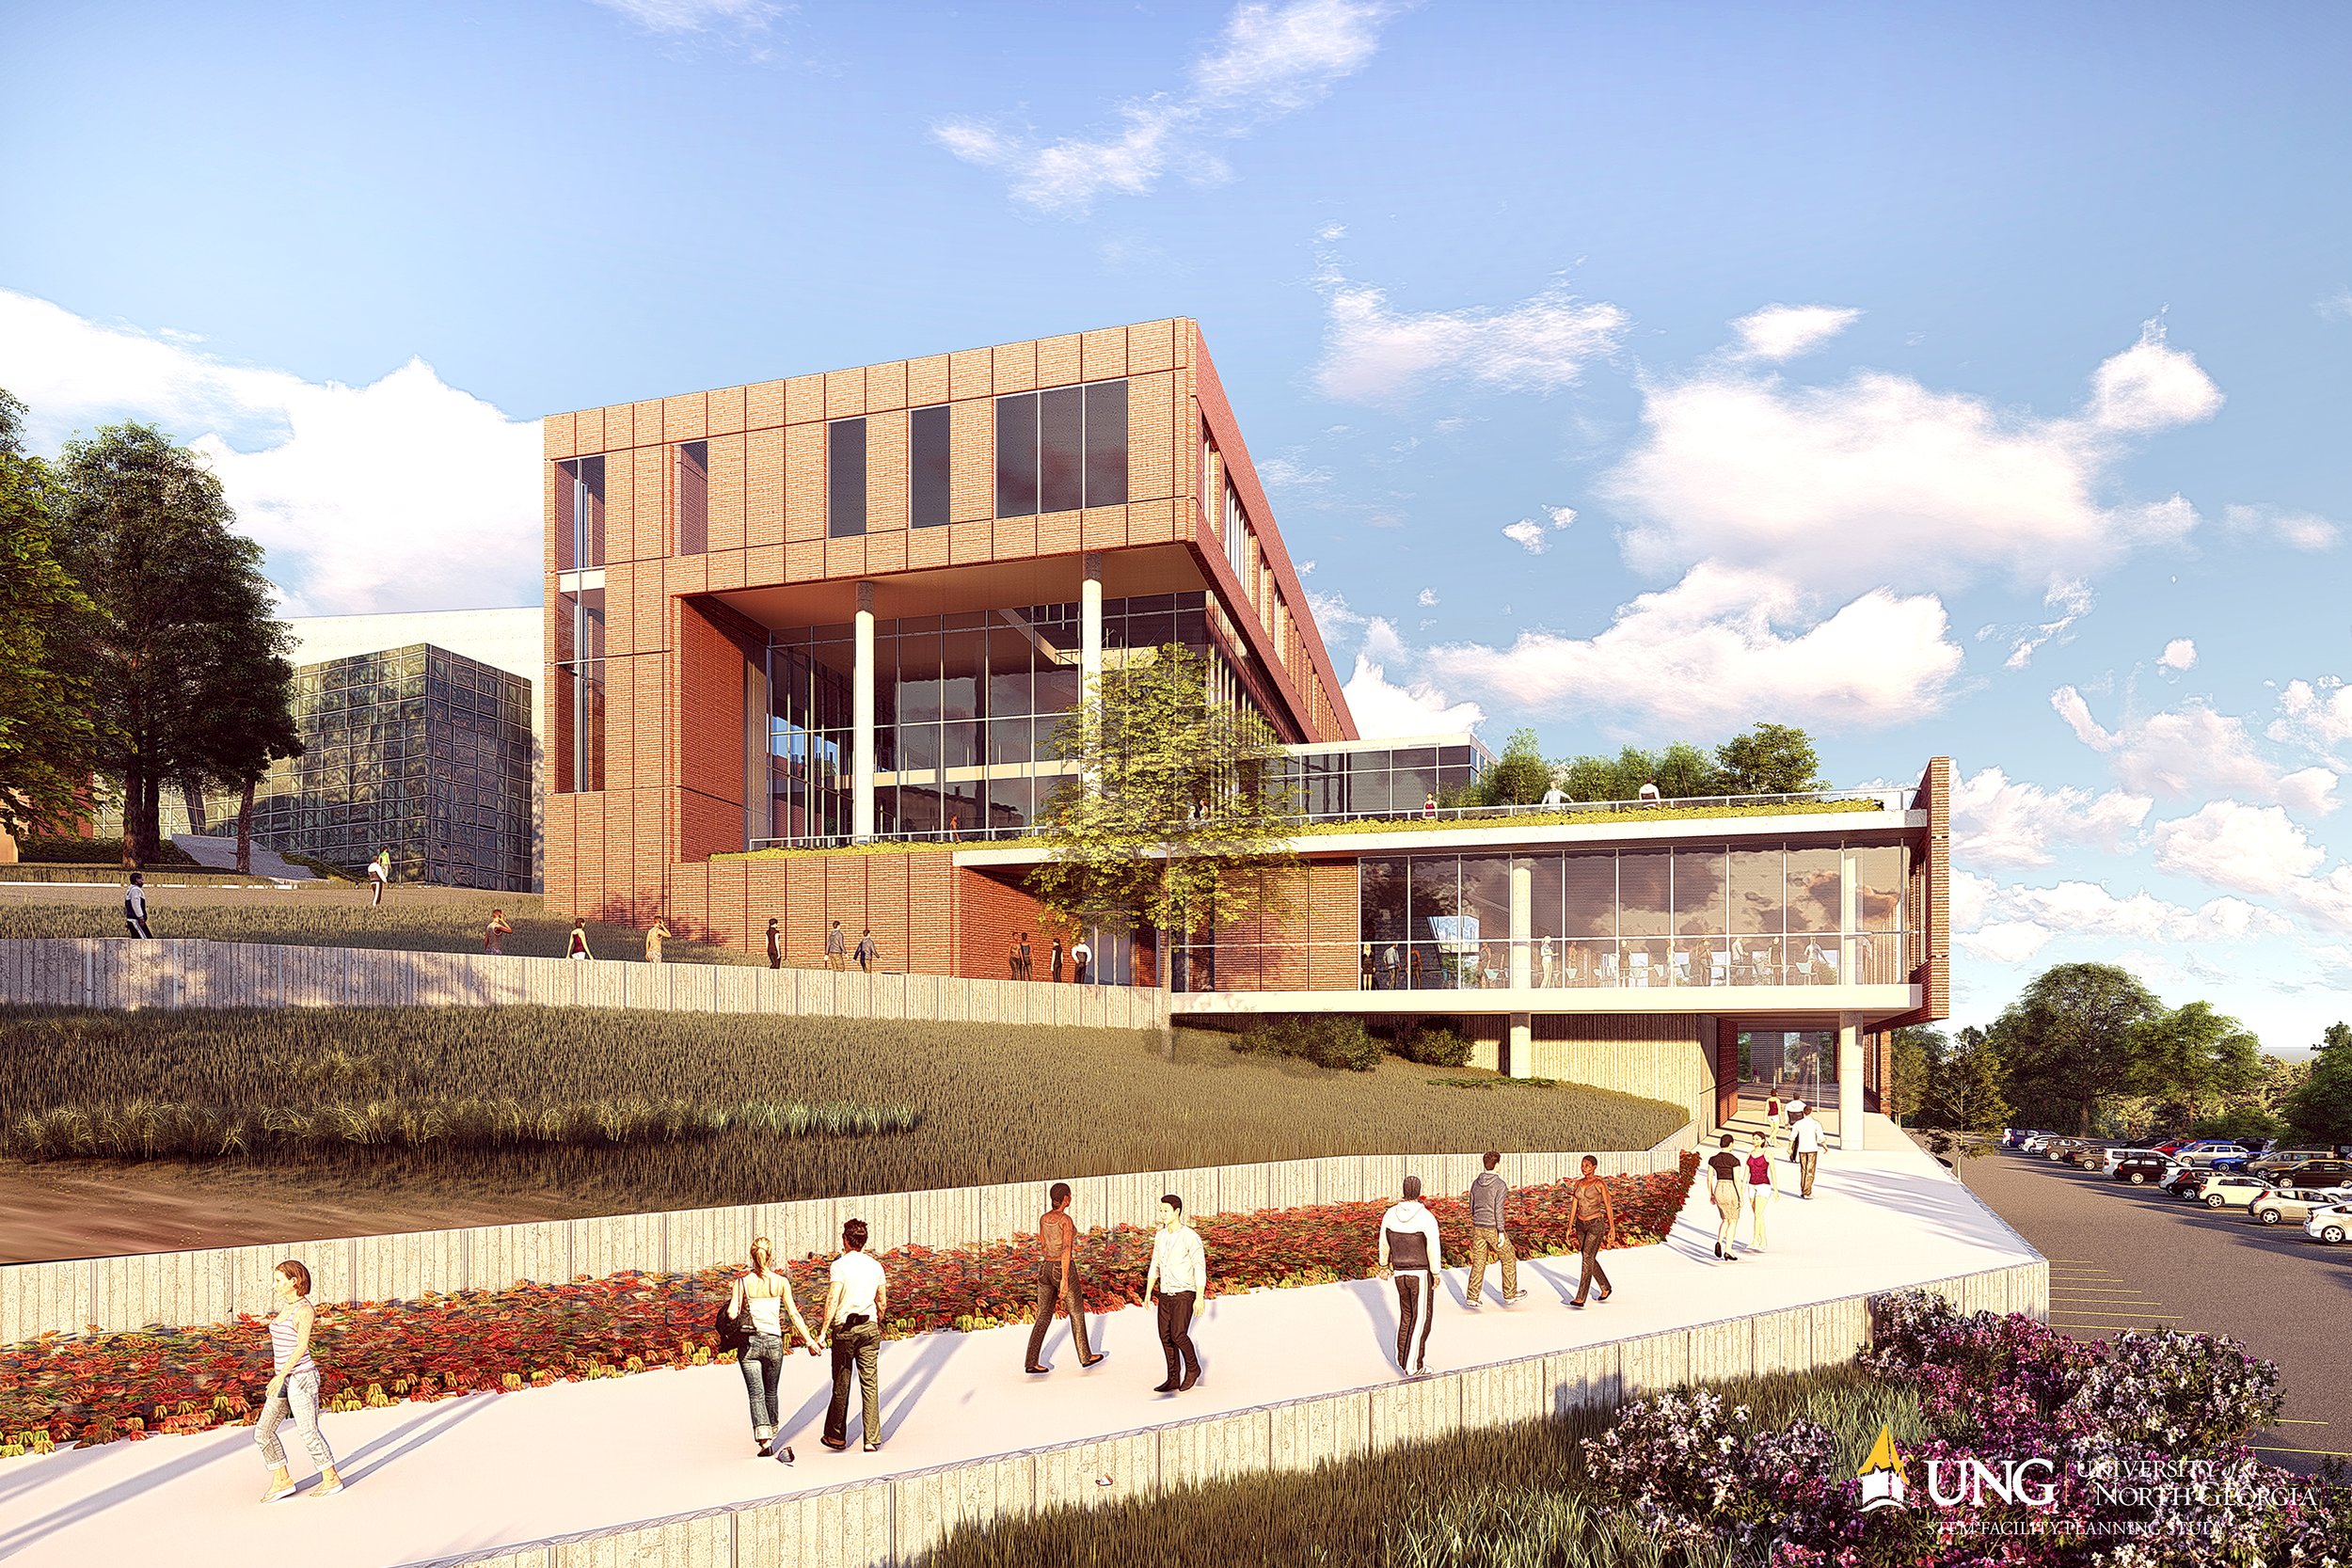 STEM CAMPAIGN - Help UNG raise $40 million to build a state-of-the-art STEM building on the Dahlonega campus and advance transdisciplinary STEM curriculum. View UNG's plans for our college's future.